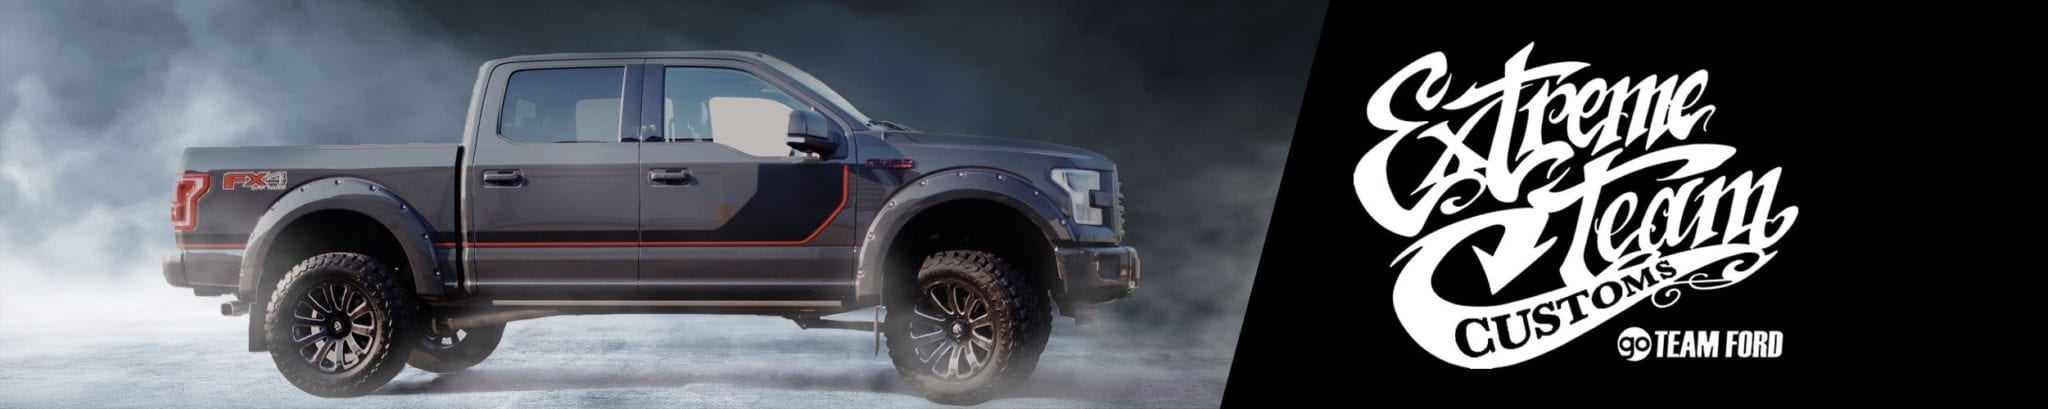 Ford Extreme Team Custom Lifted Trucks